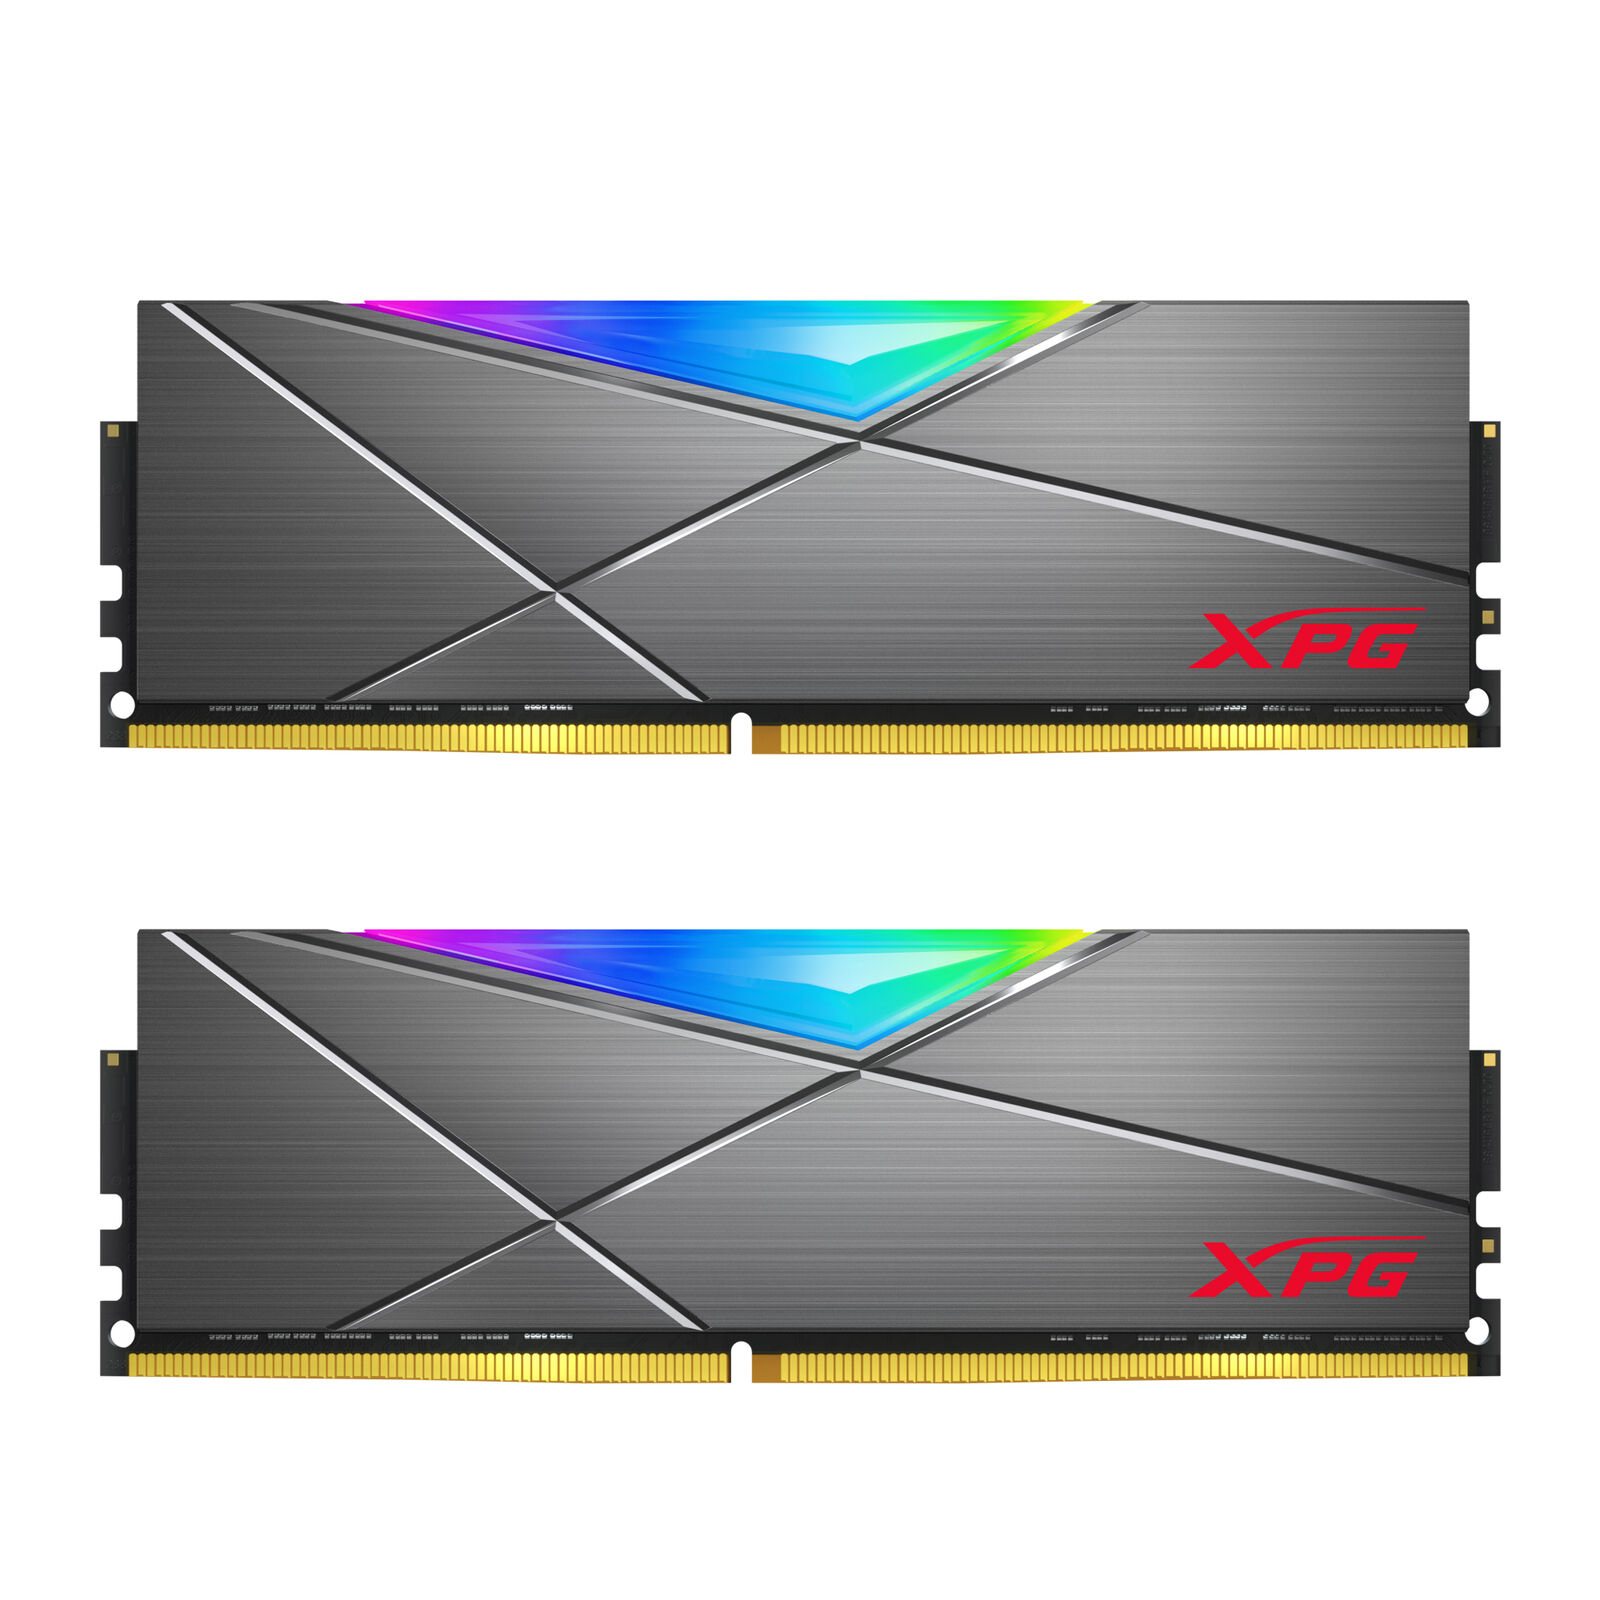 XPG SPECTRIX D50 RGB Desktop Memory: 16GB (2x8GB) DDR4 3200MHz CL16 GREY. Buy it now for 94.99